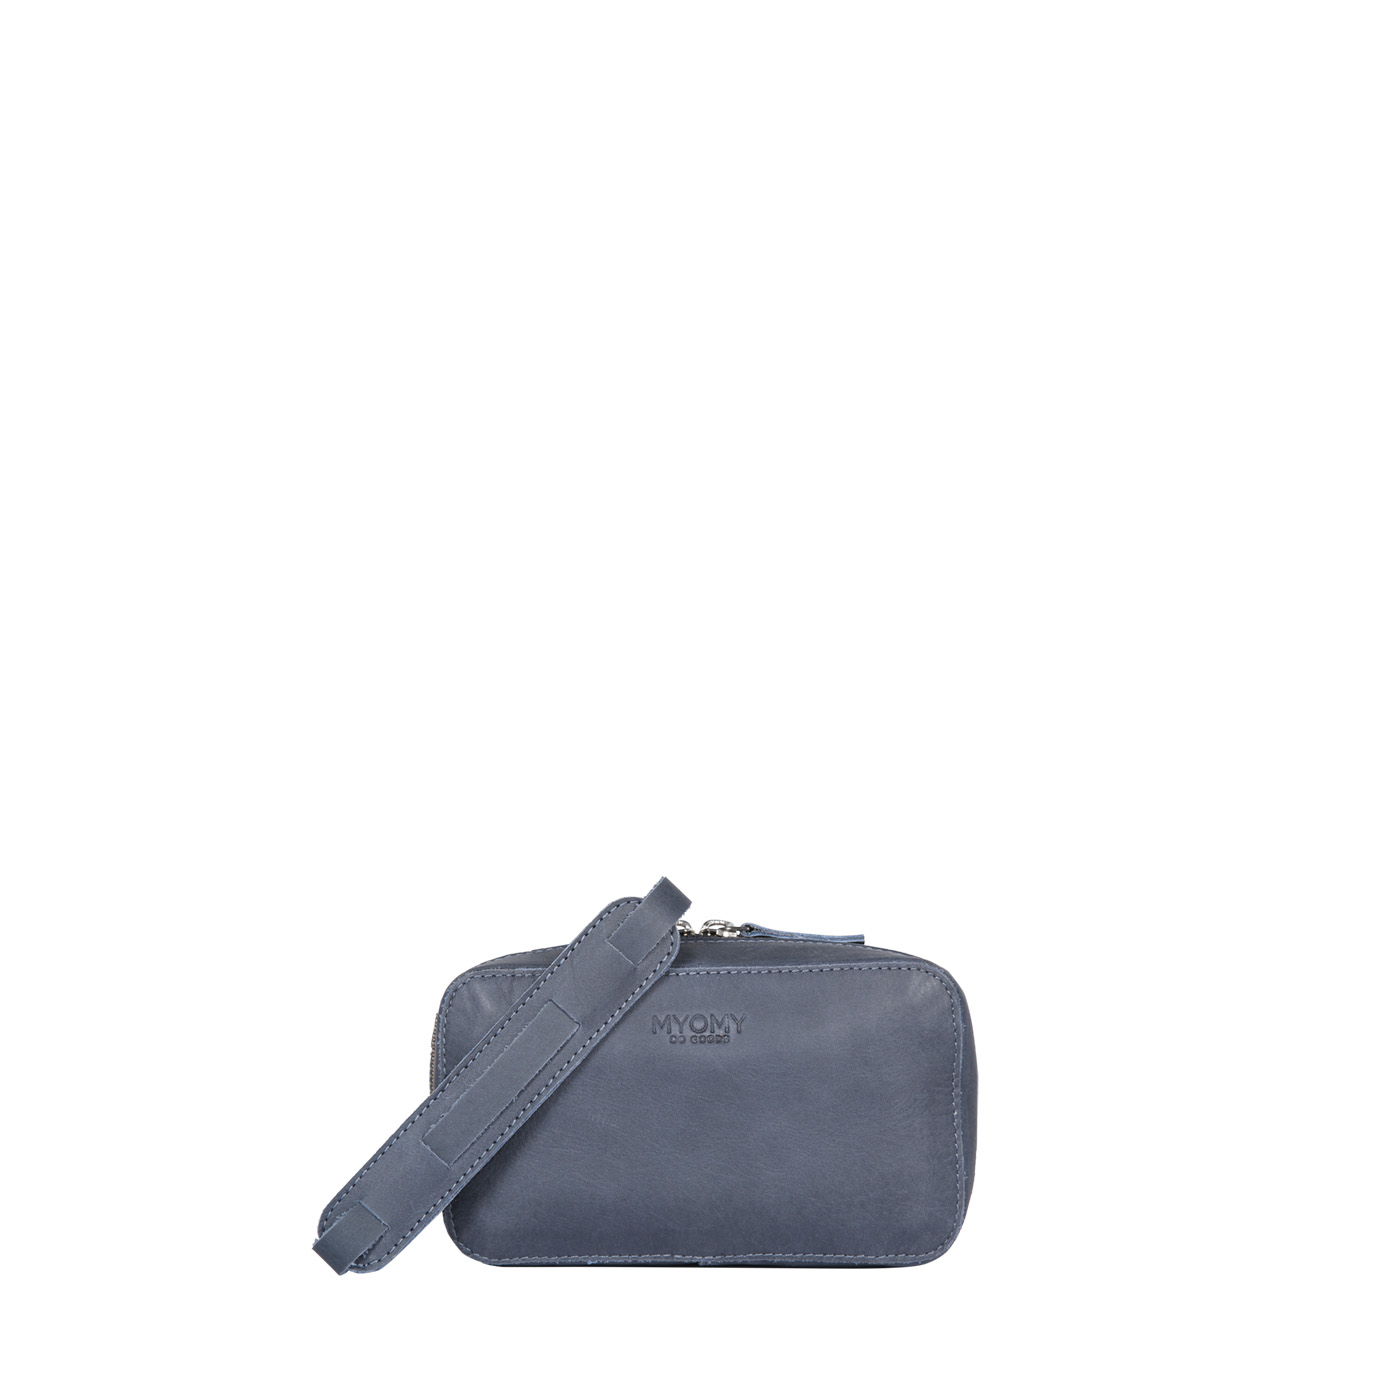 MY BOXY BAG Camera – hunter navy blue